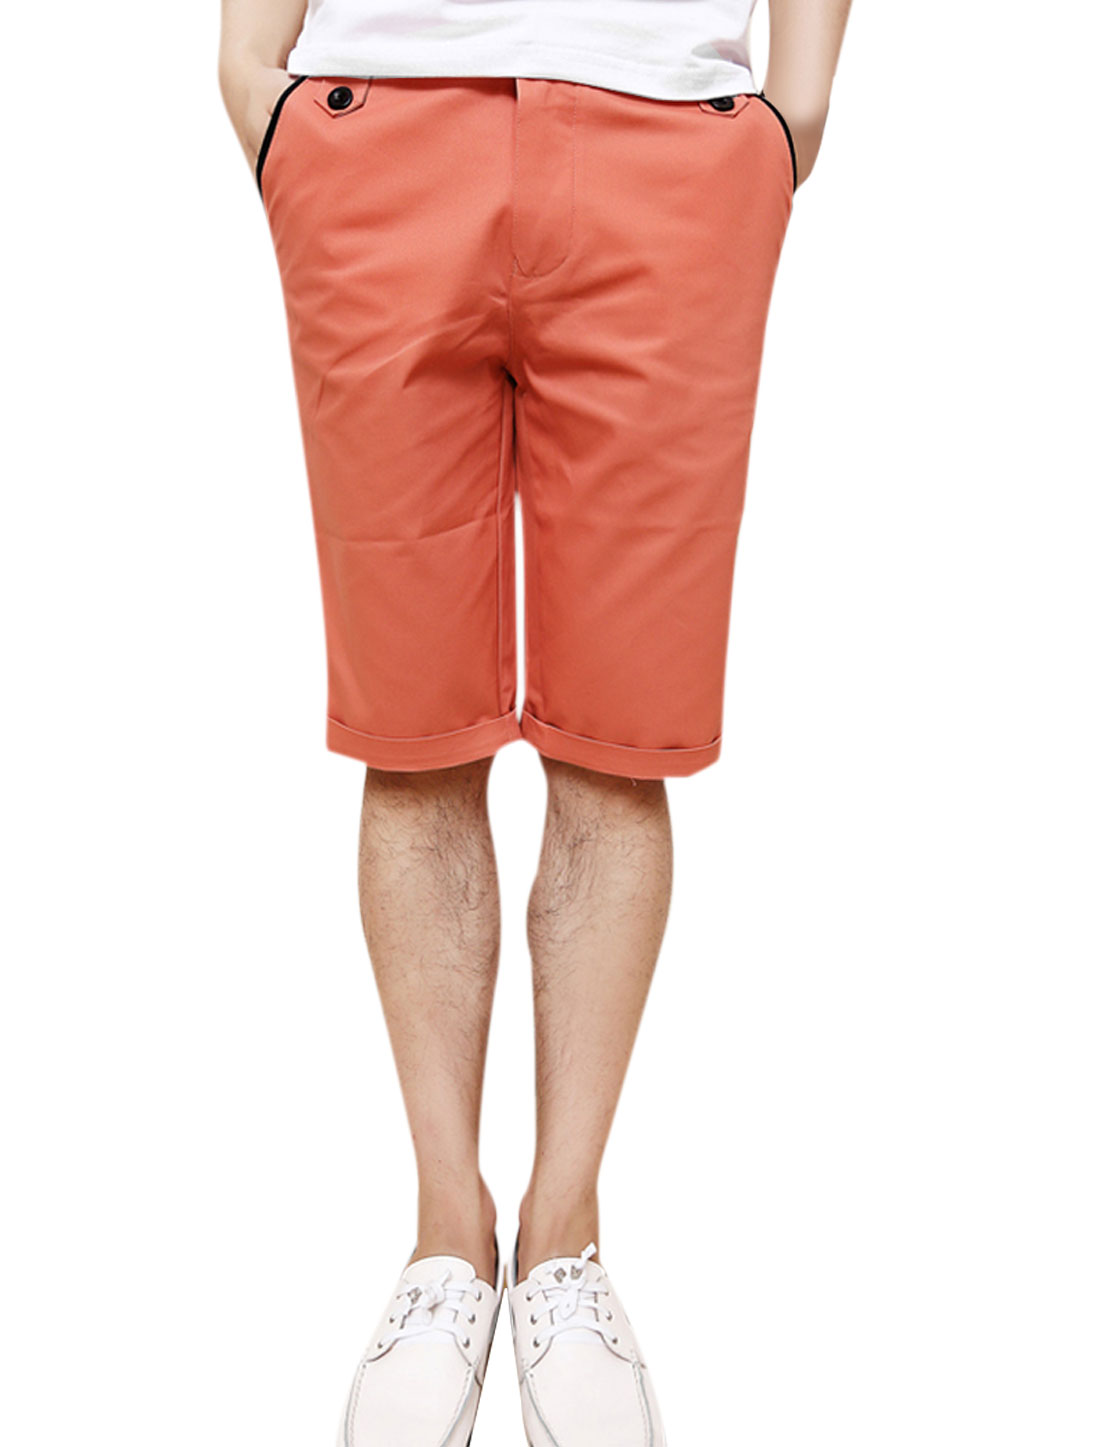 Men Waistband Loop Zip Closure Mid Rise Casual Short Pants Coral W32